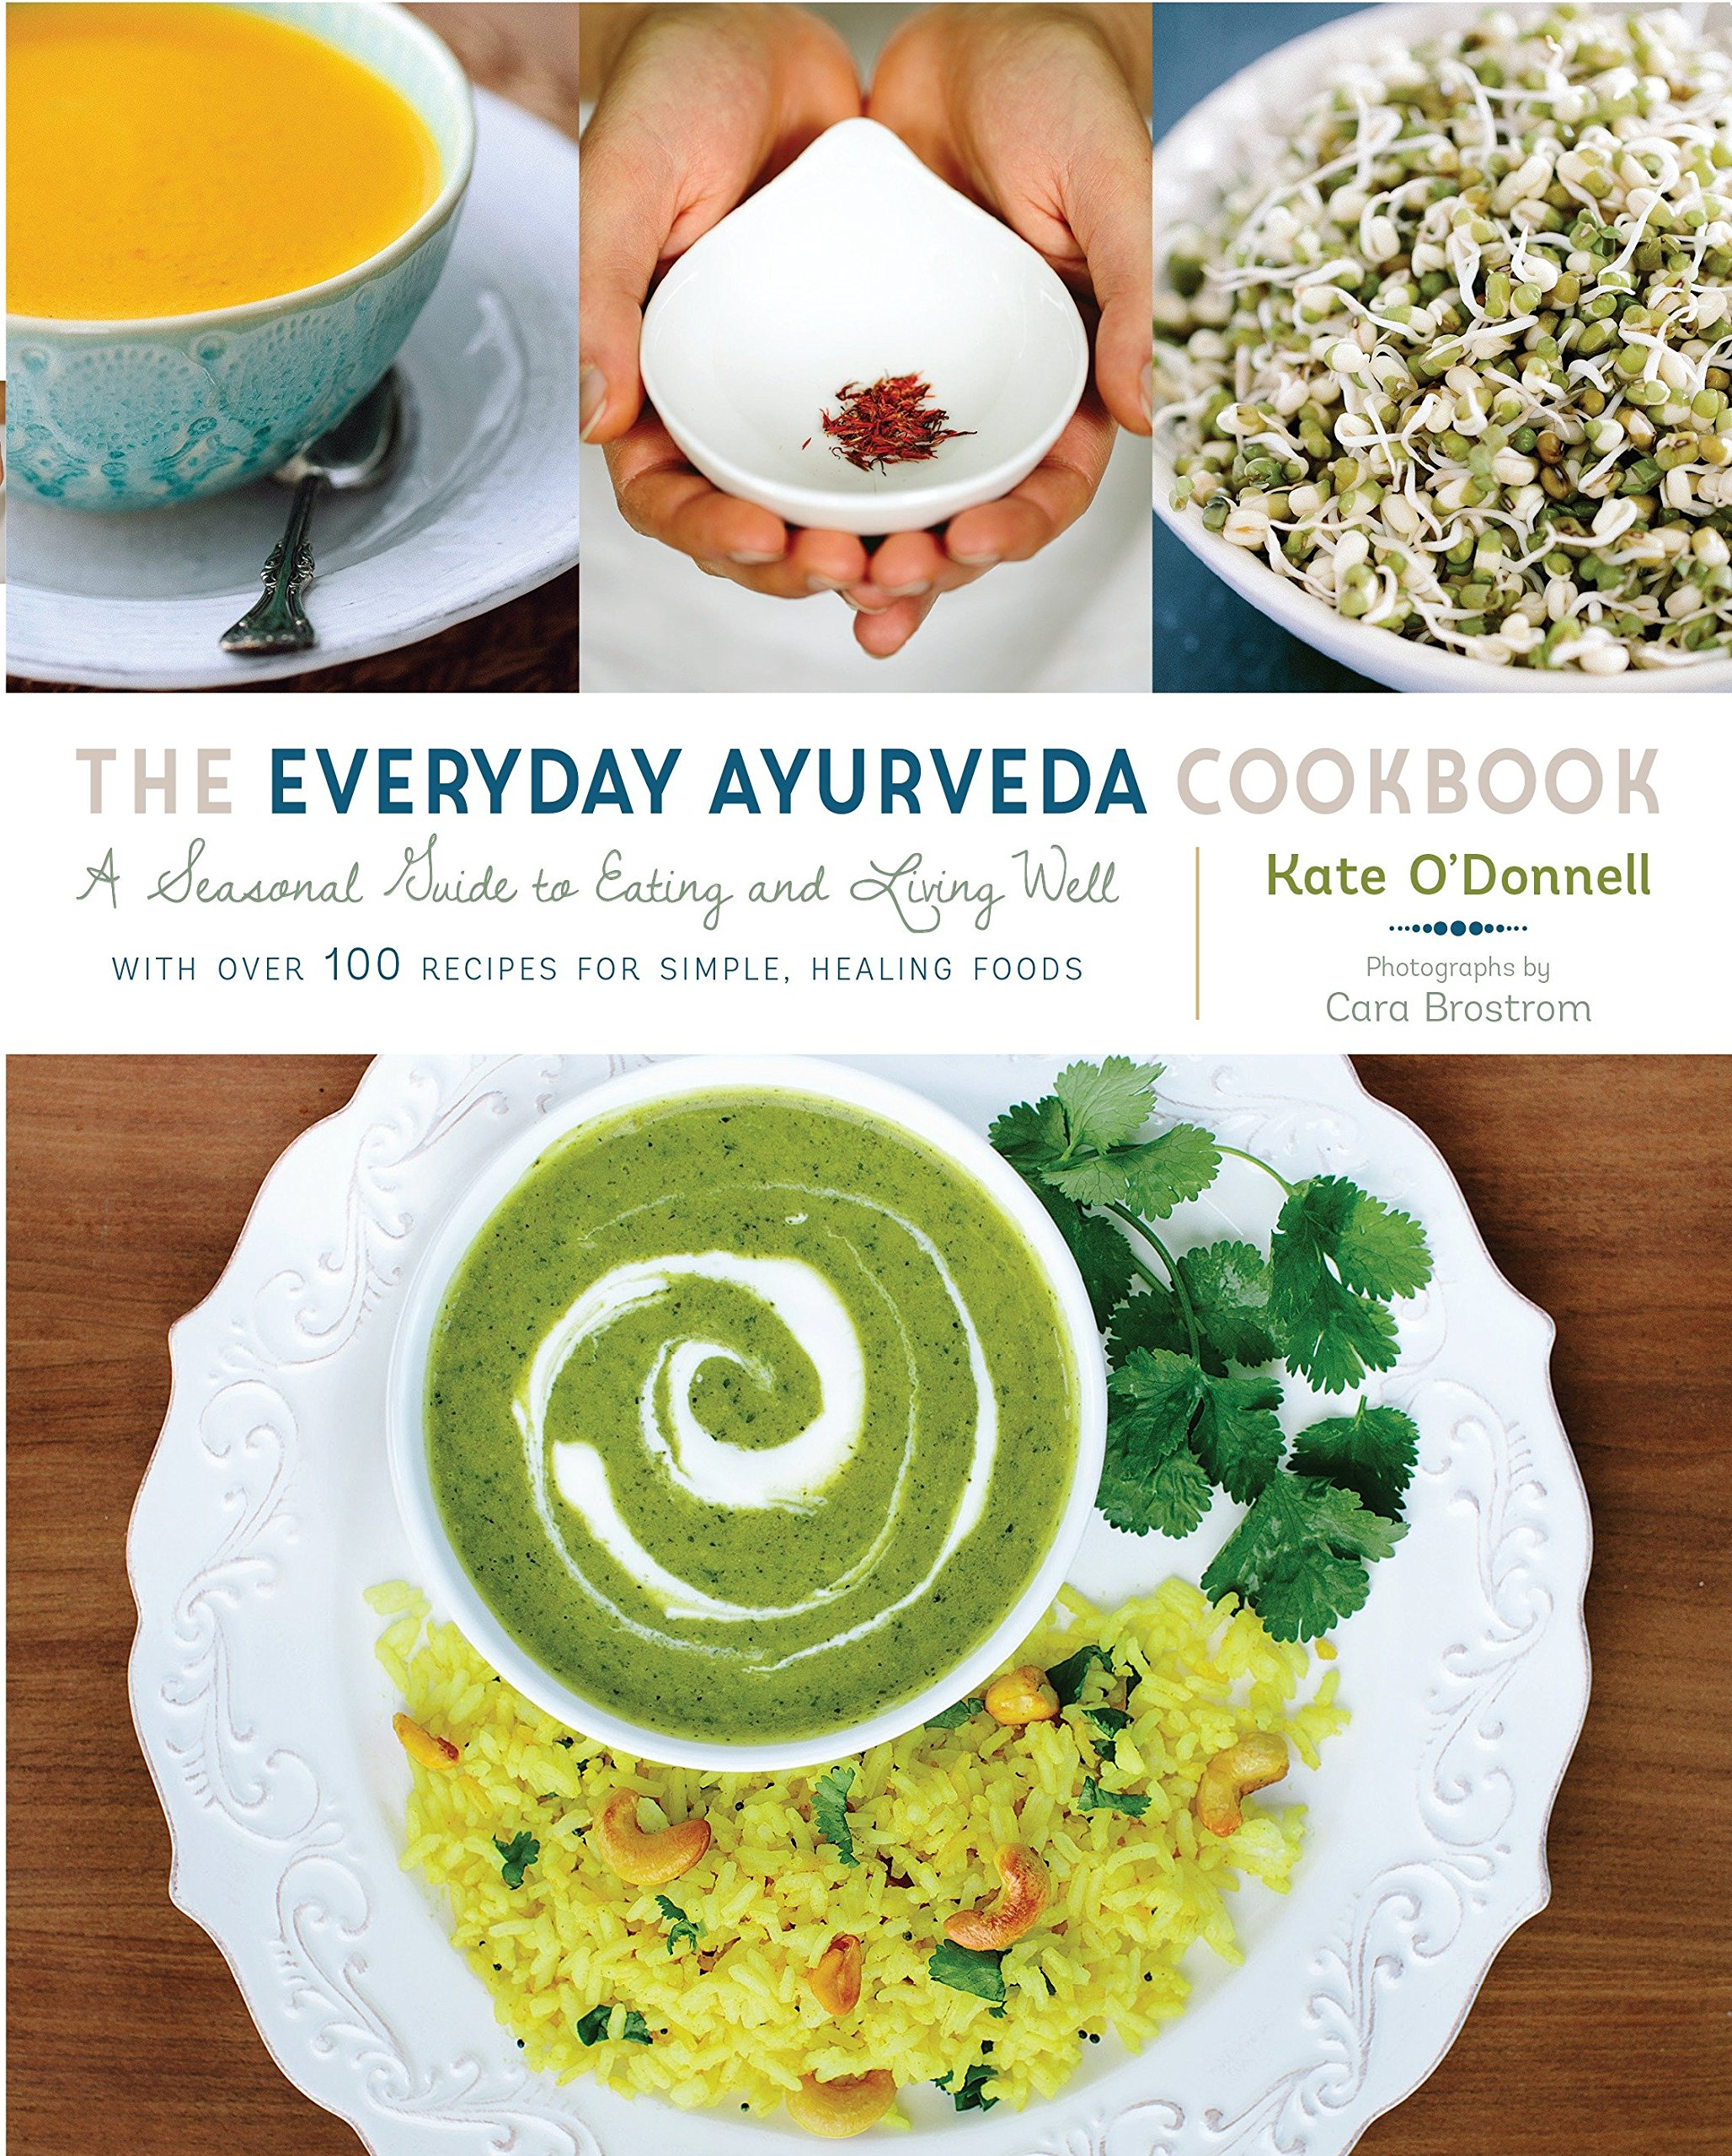 The Everyday Ayurveda Cookbook: A Seasonal Guide to Eating and Living Well pdf